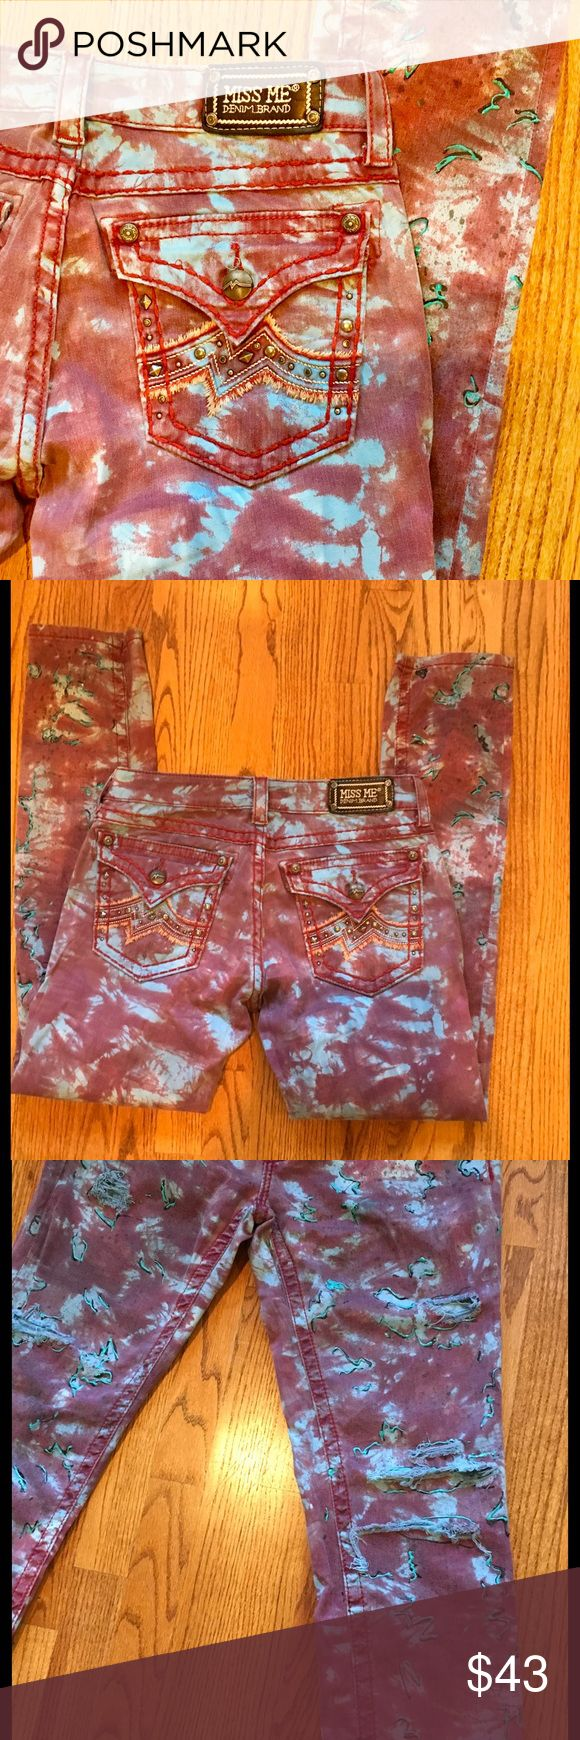 Miss Me Unique Tie Dye Jeans Stylish one-of-a-kind Miss Me decorated pants. They are tie dye design and are decorated with bling around the front and back pockets. They have front rips on both legs. They are decorated with puff paint and splashed paint that is very faint. Size 30. Color is red tie dye and they are a 32 inseam. Miss Me Jeans